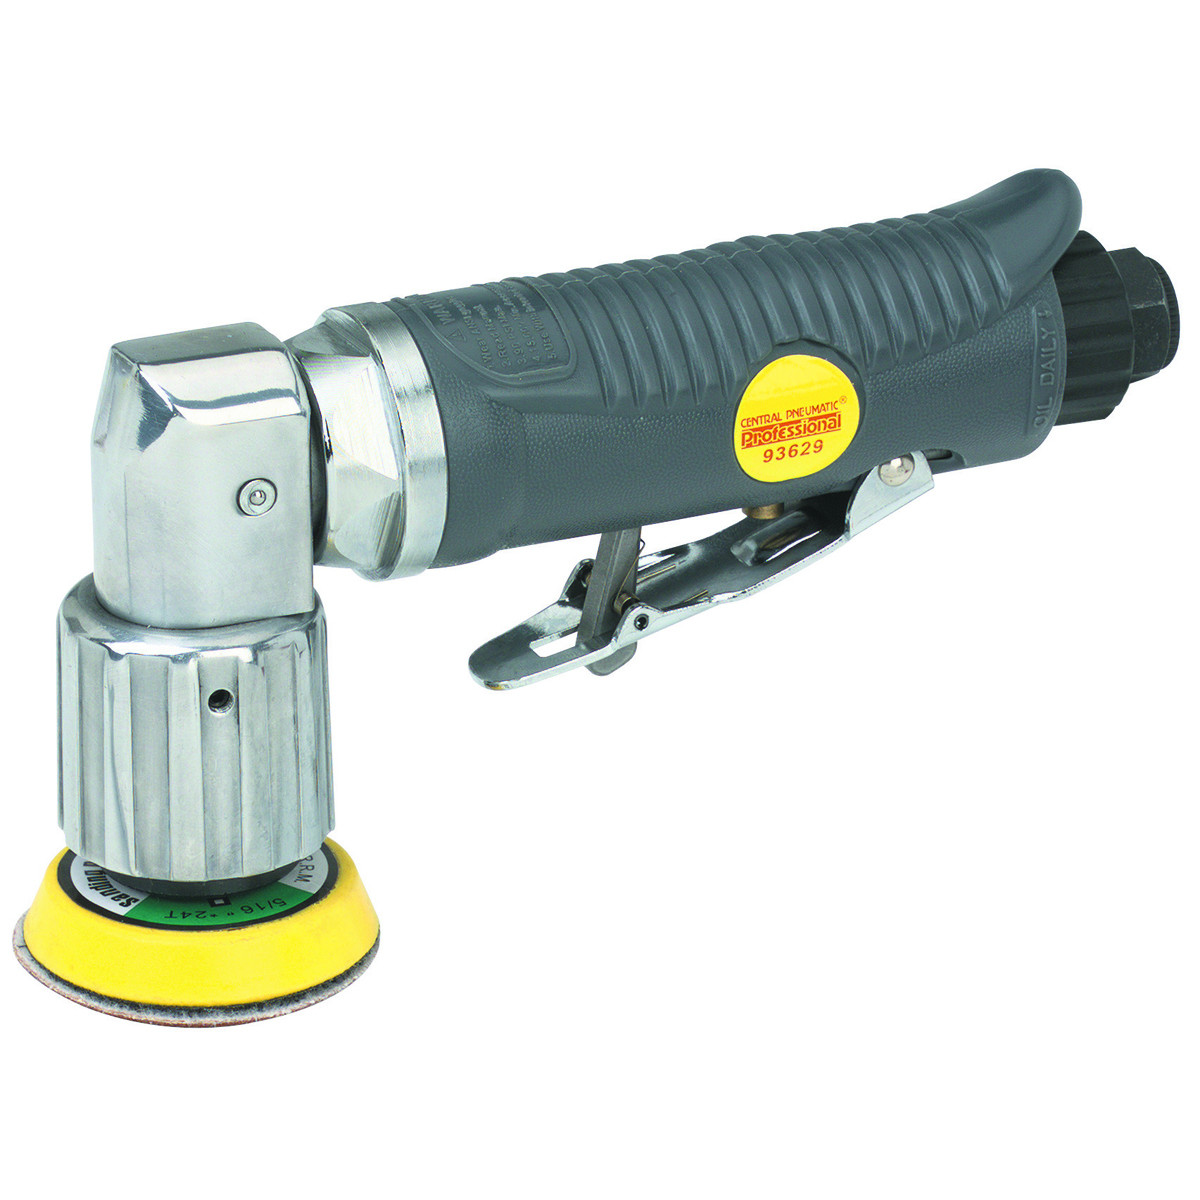 11 Awesome Hardwood Floor Nailer Harbor Freight | Unique